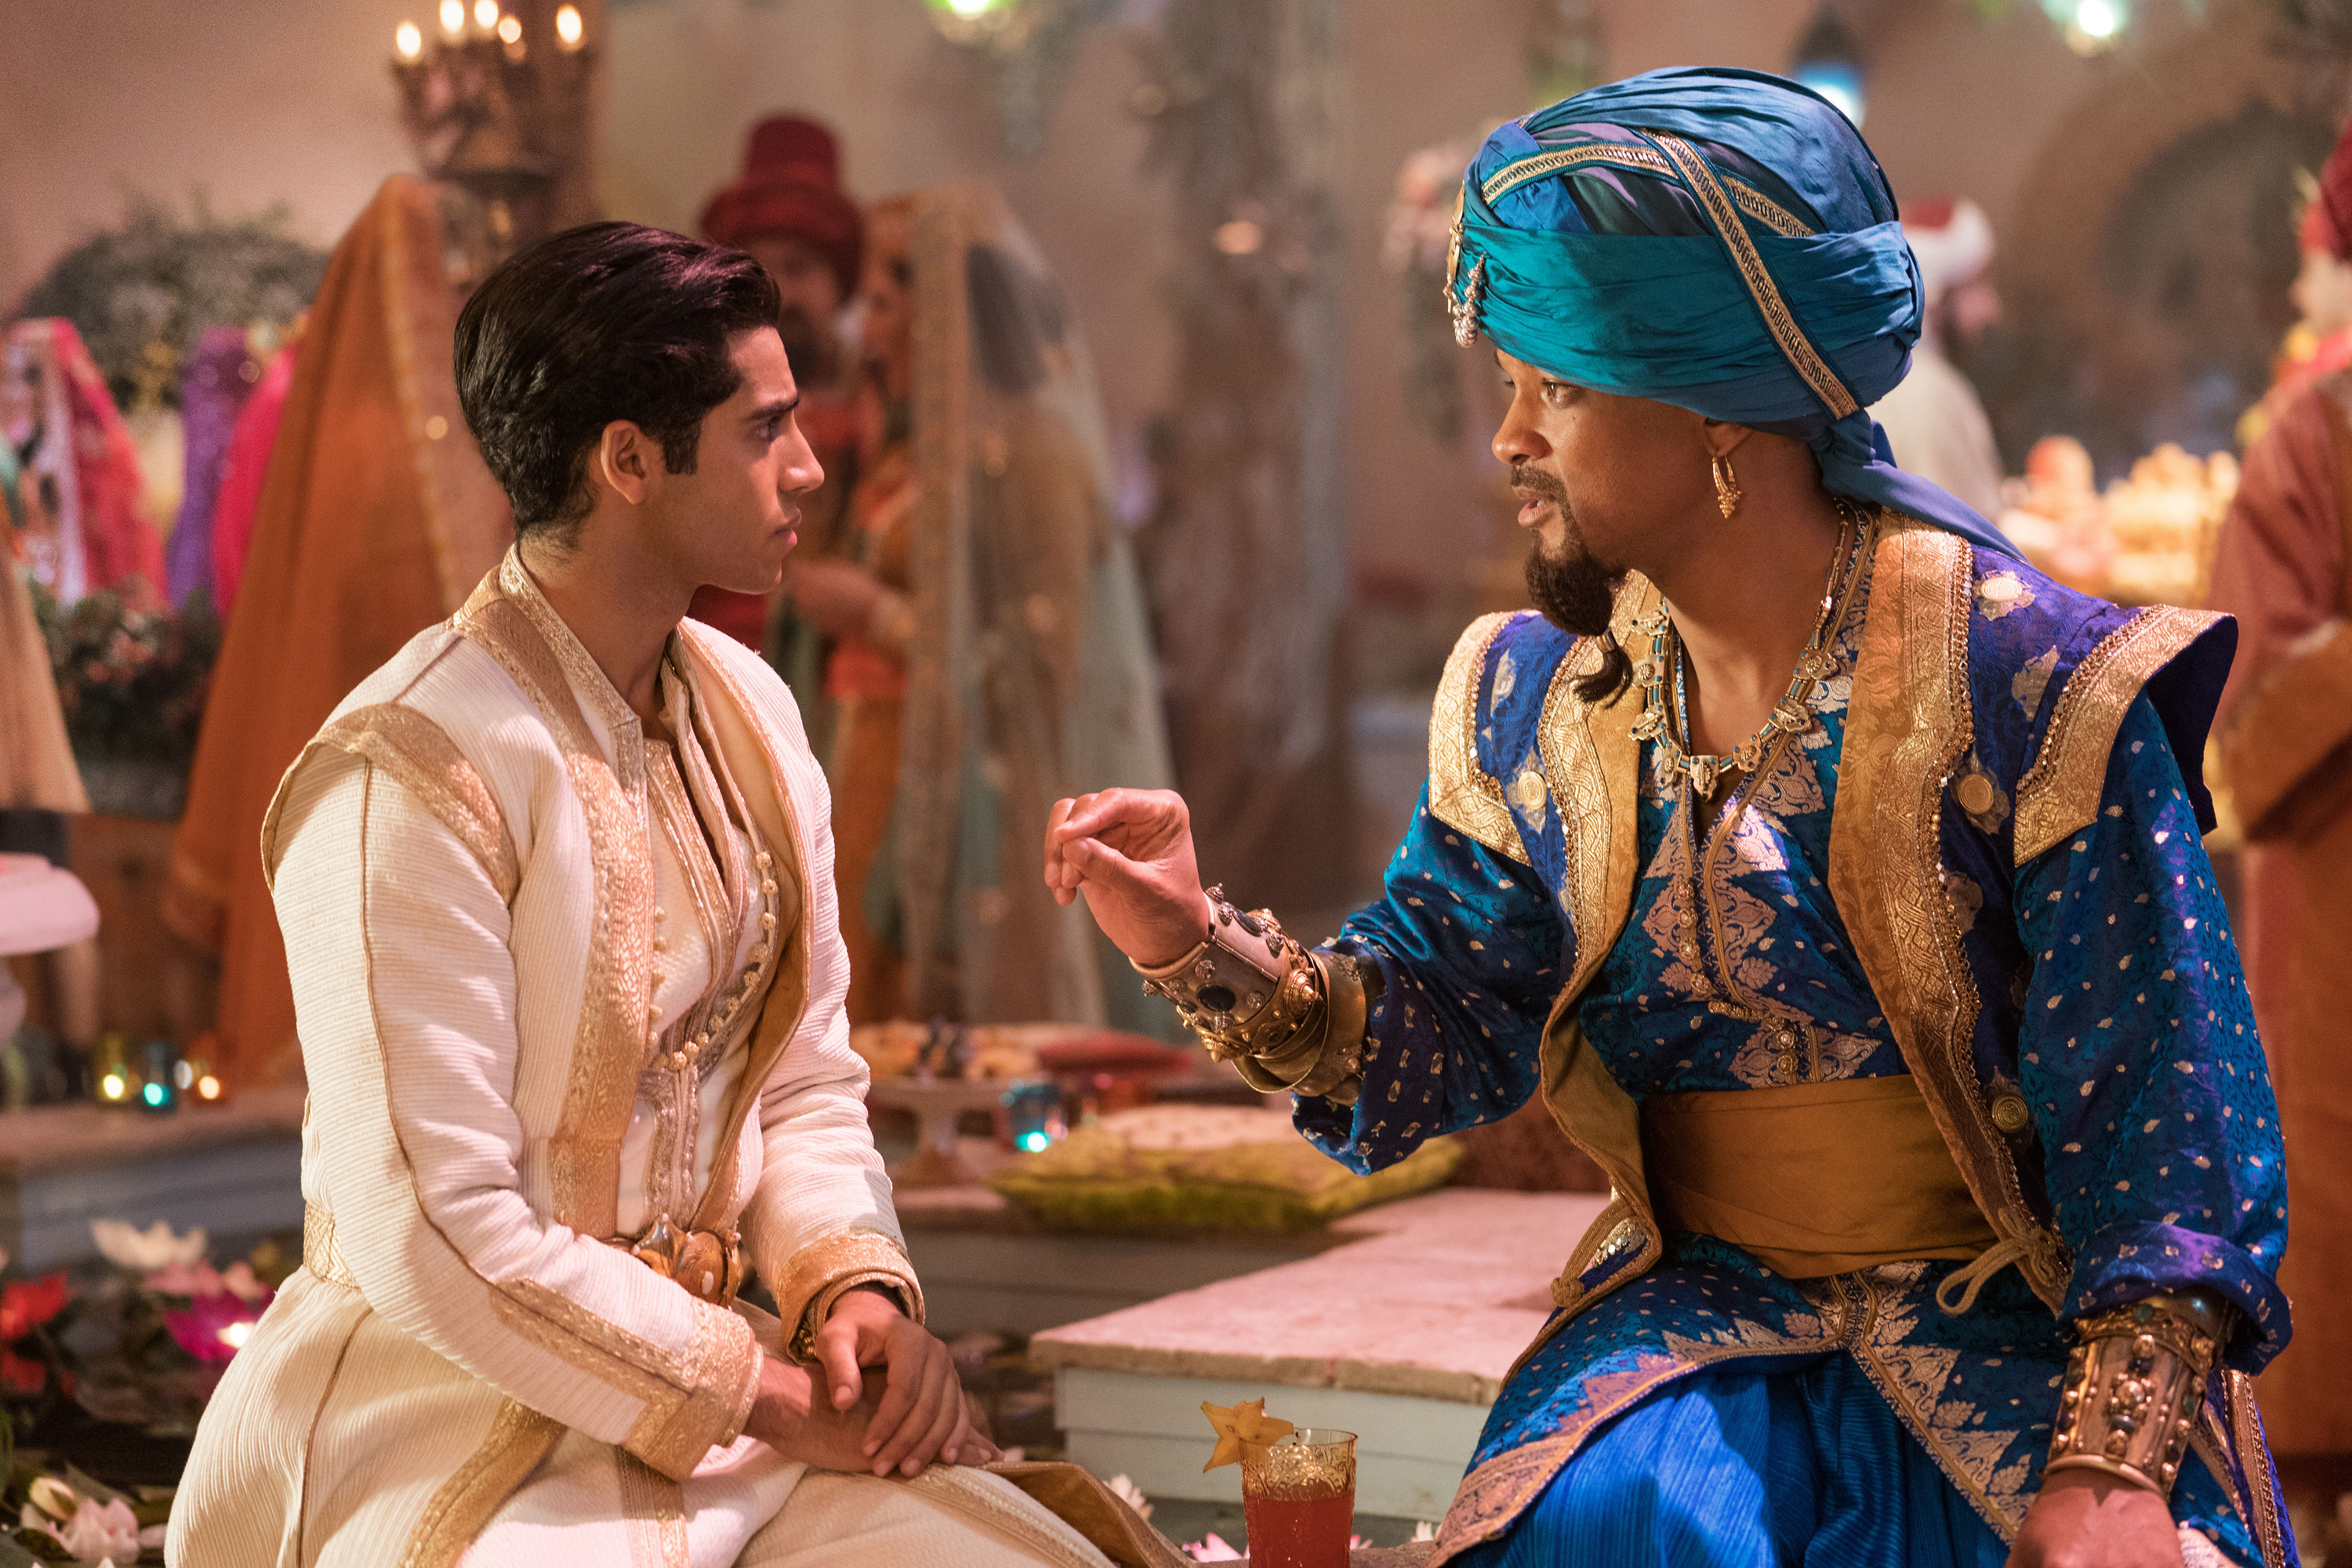 Aladdin (2019), directed by Guy Ritchie | Movie review